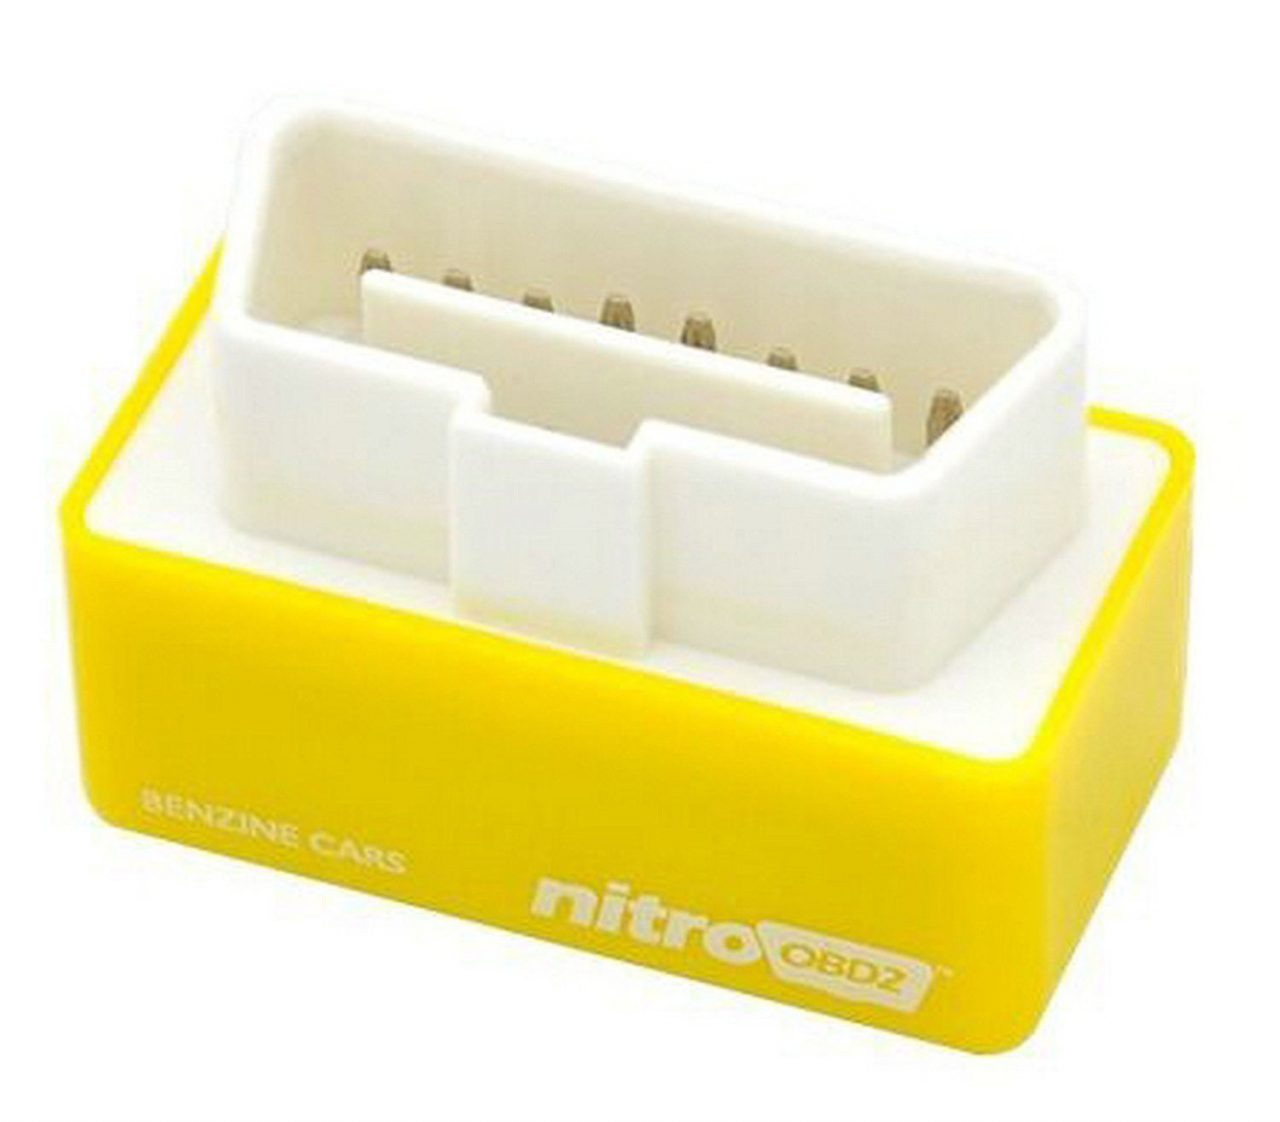 Nitro OBD2 Yellow Perfomrance Chip Review